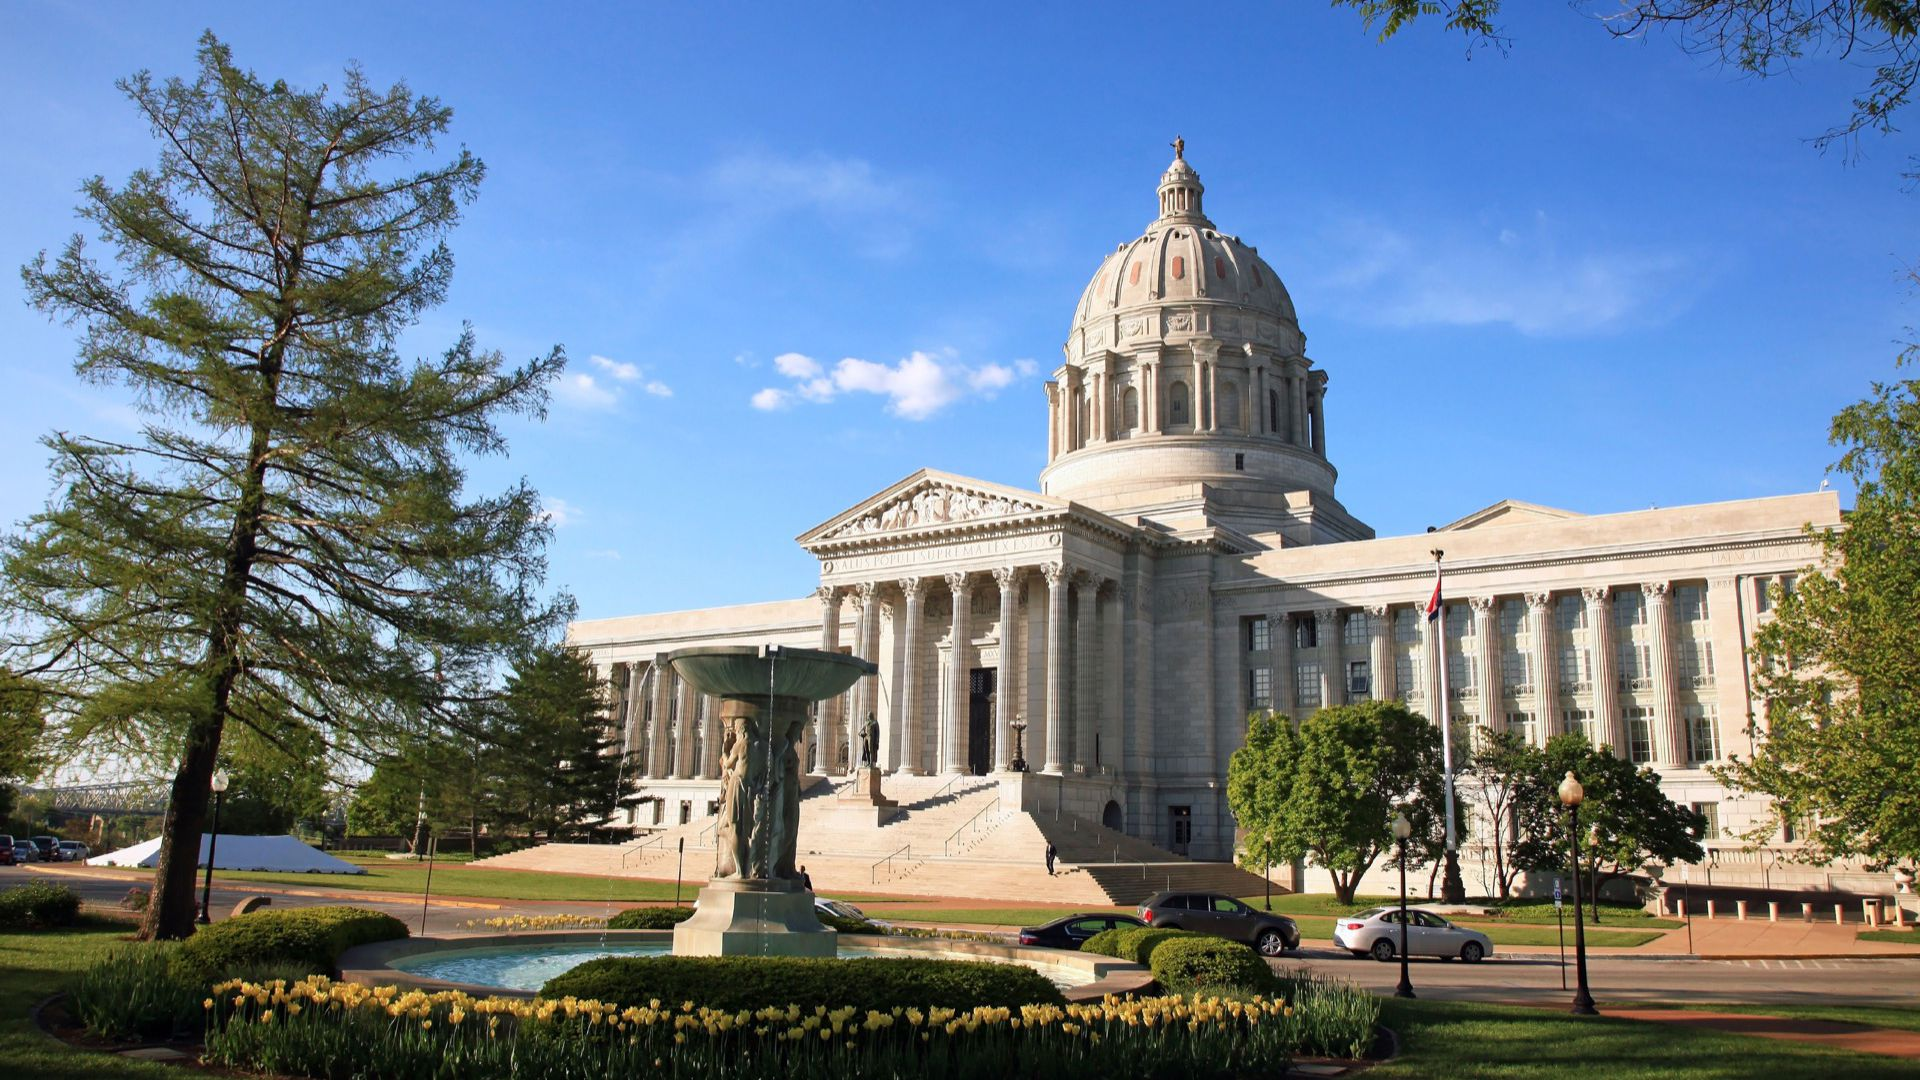 The Missouri state capitol building